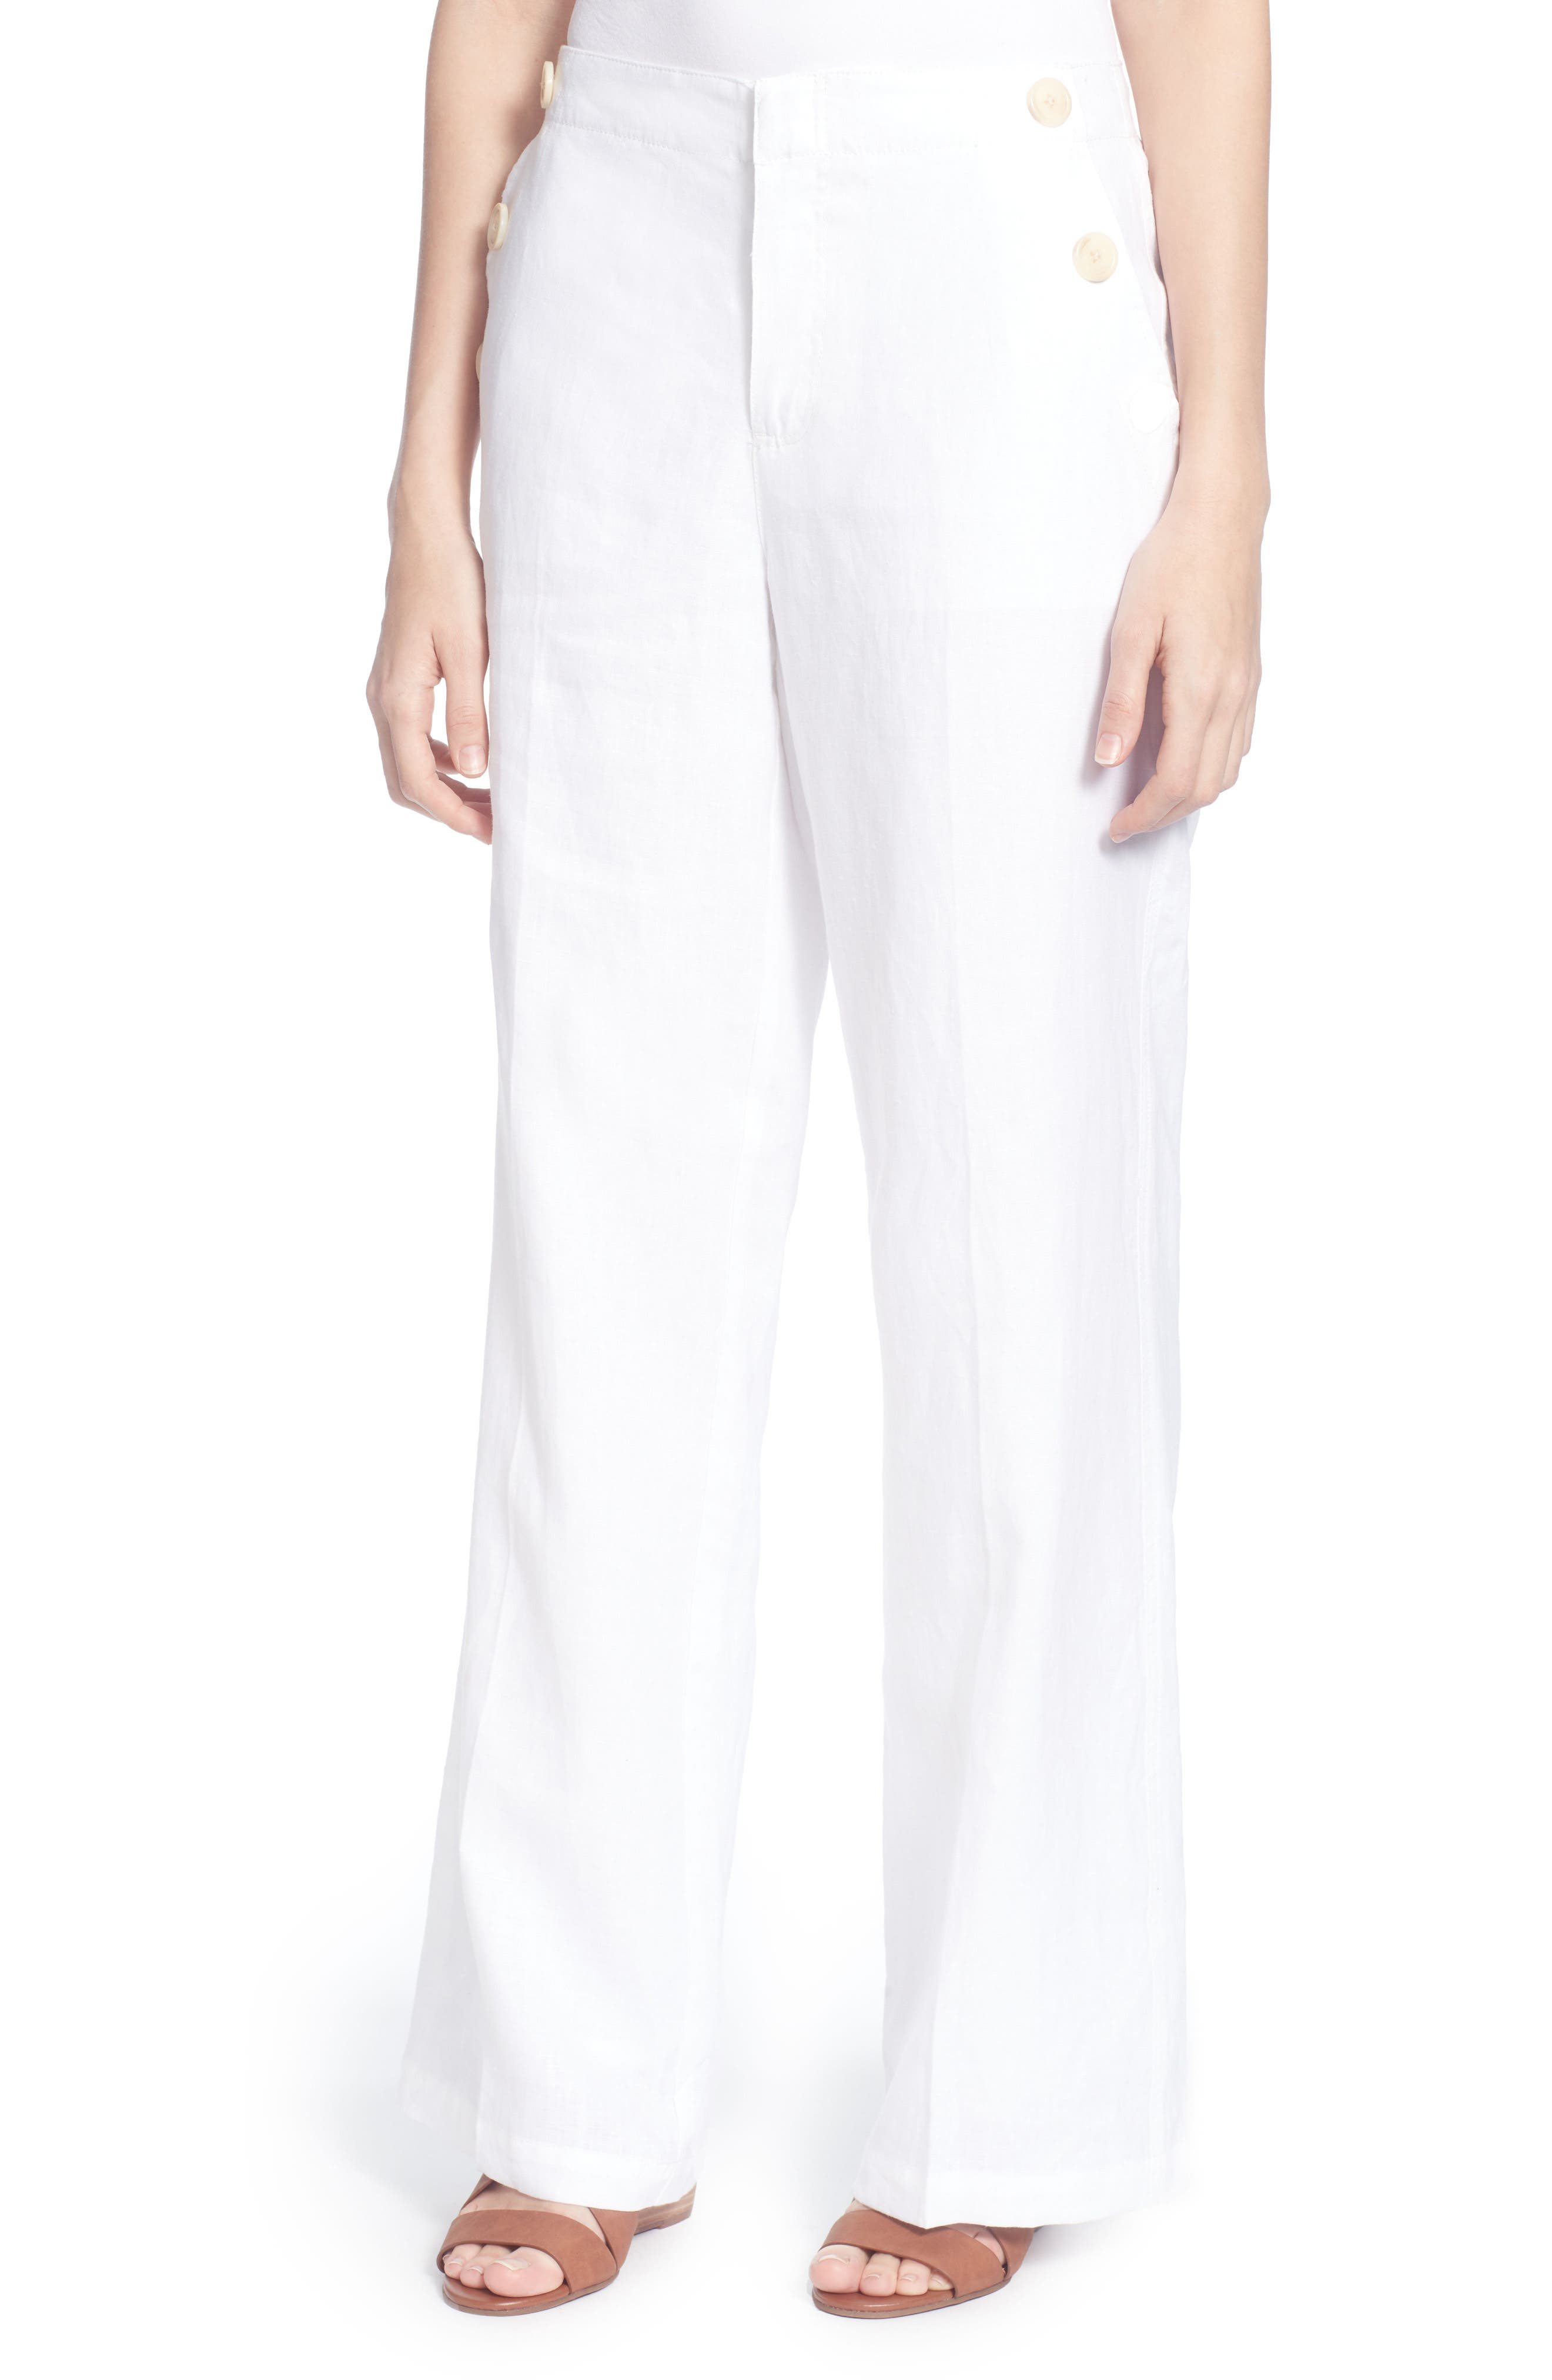 Fritz Linen Sailor Pants,                         Main,                         color, Bright White